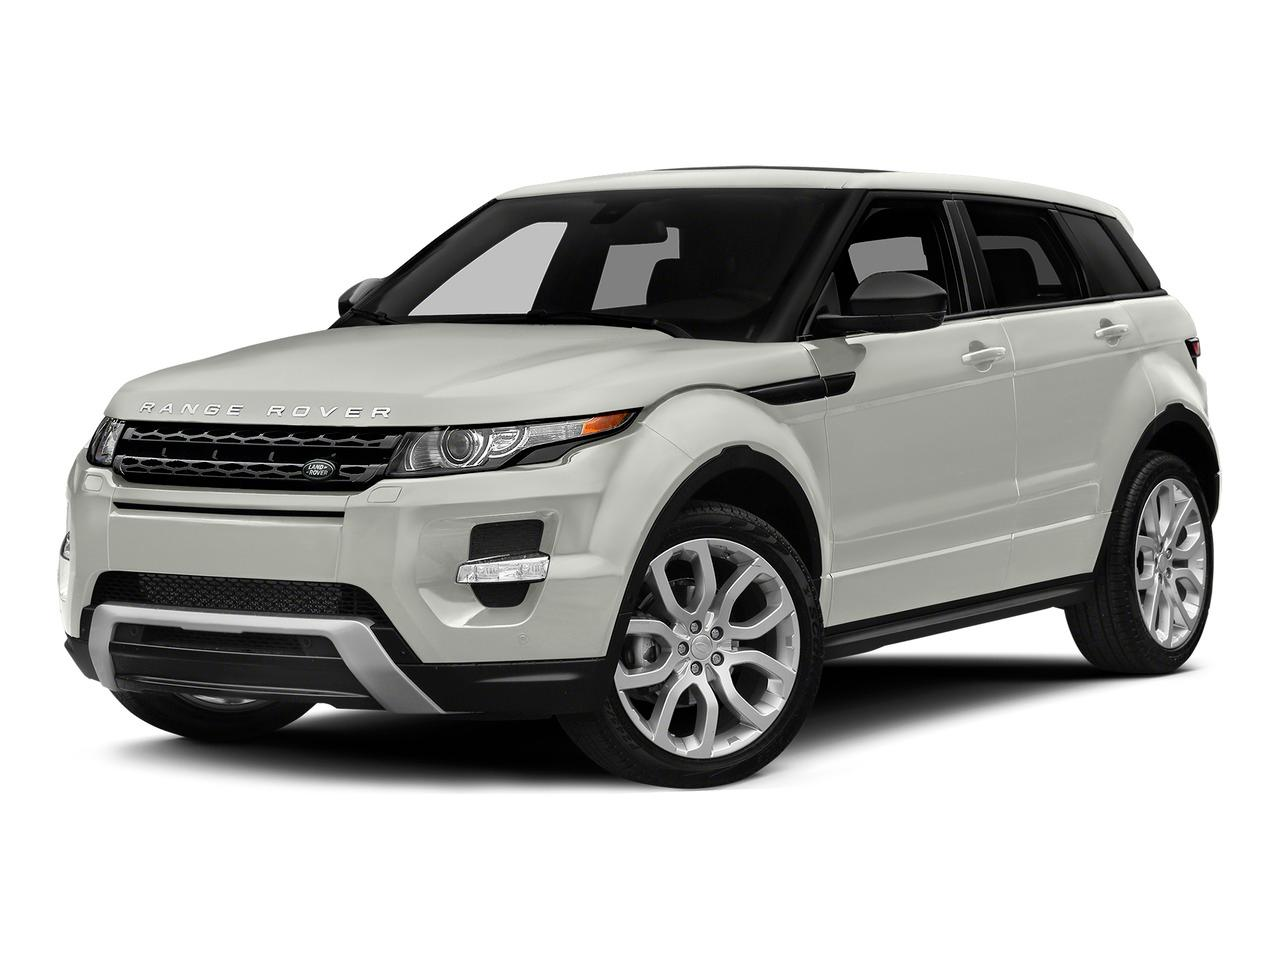 2015 Land Rover Range Rover Evoque Vehicle Photo in Chapel Hill, NC 27514